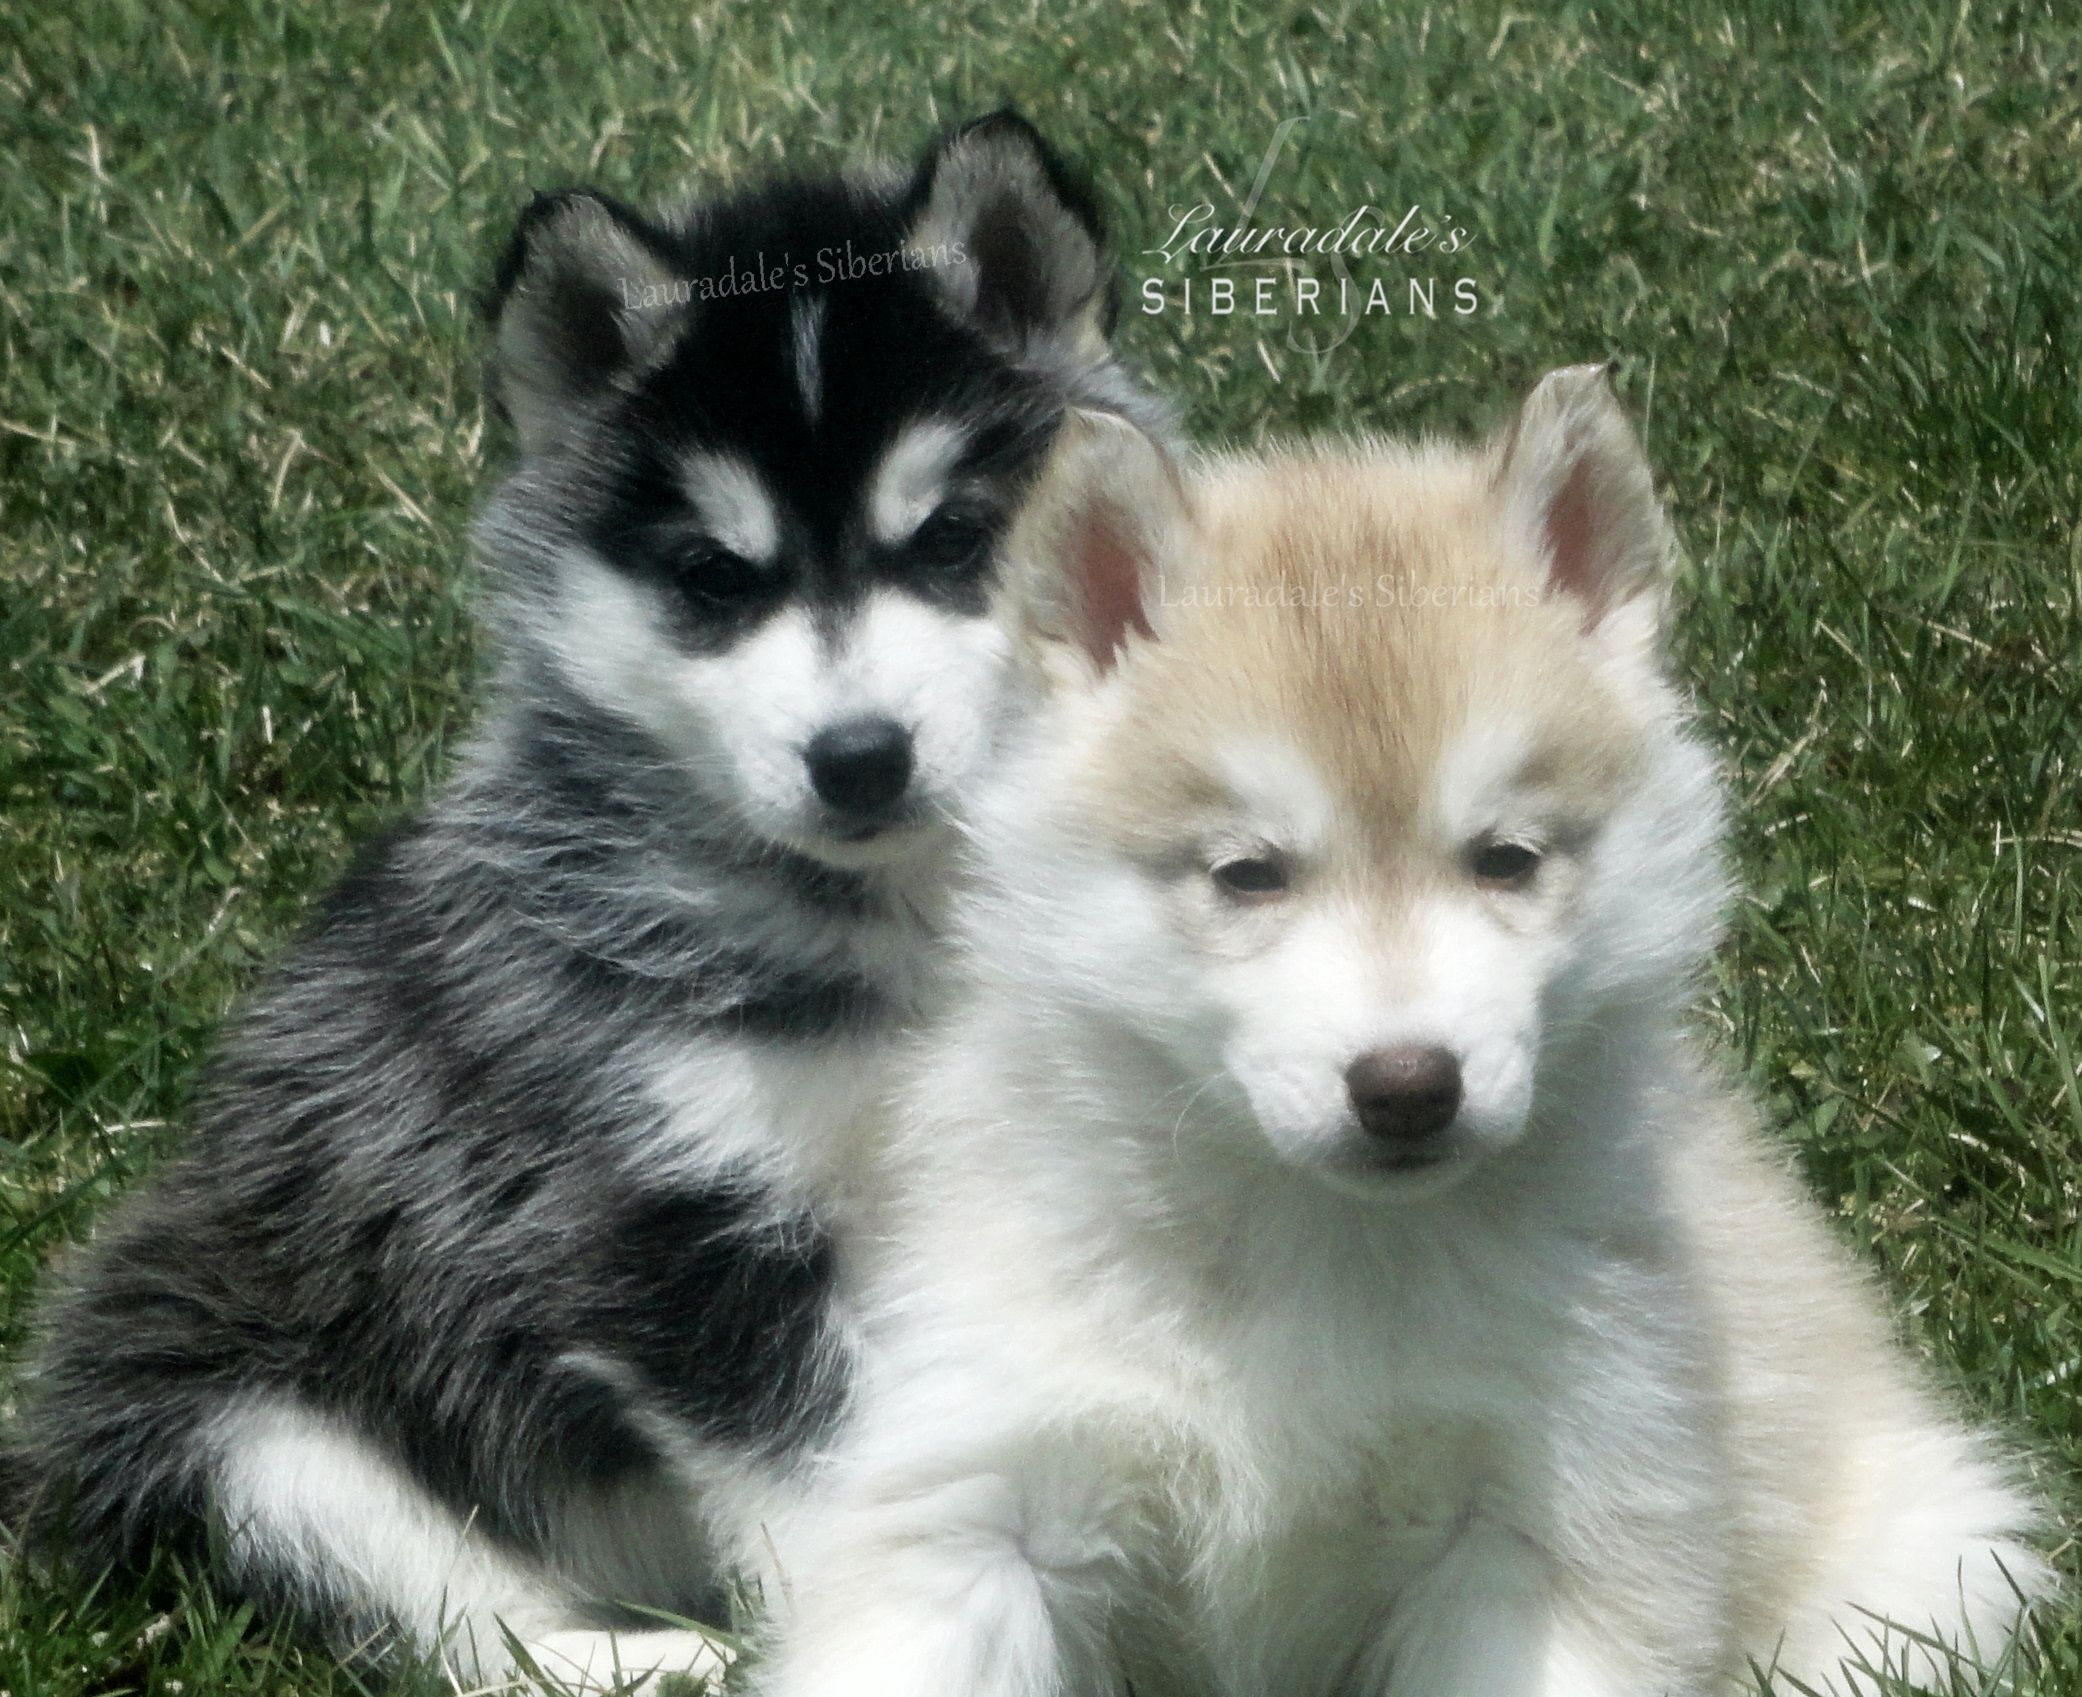 Two Siberian Husky Puppies 2 Brothers Littermates Black Siberian Husky Puppy And Red Siberian Husky Puppy Siberian Husky Husky Siberian Husky Puppies